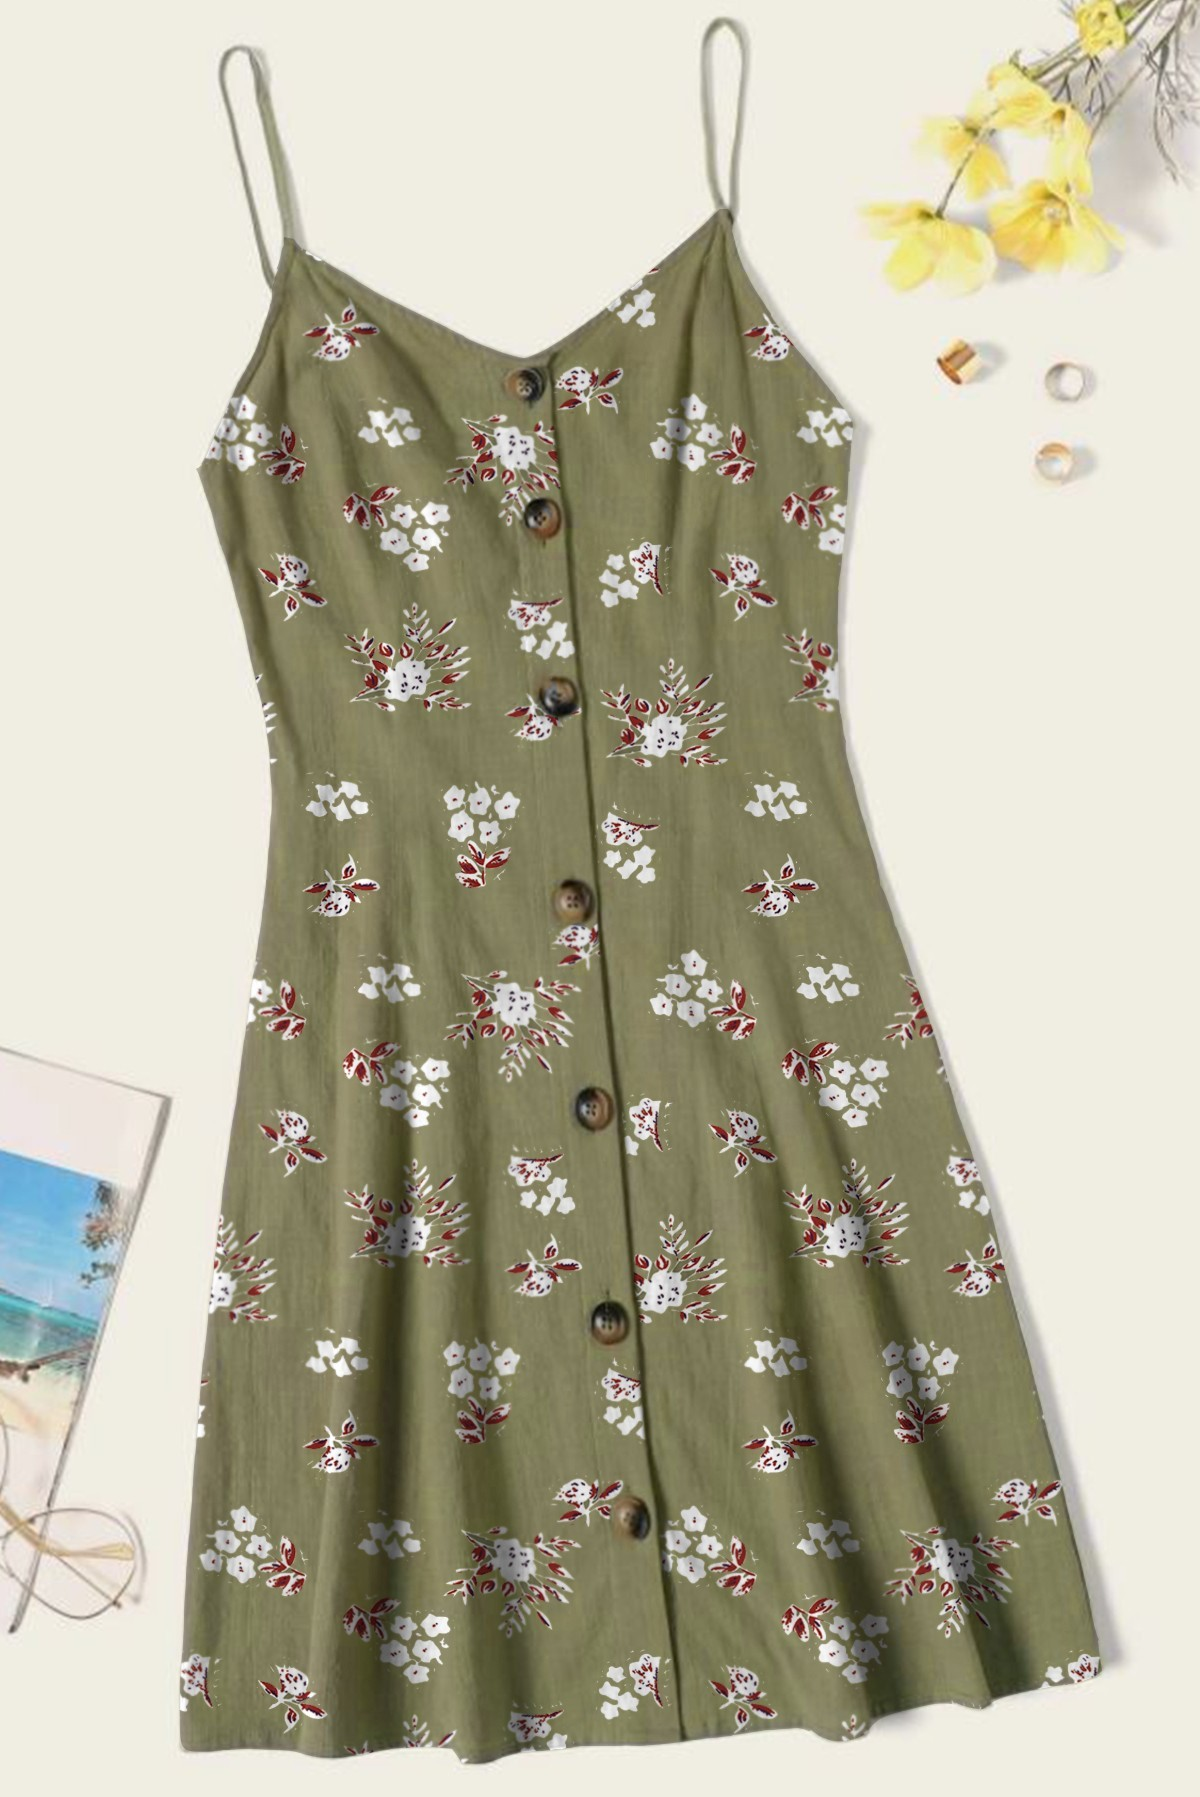 Delightful Floral Dress